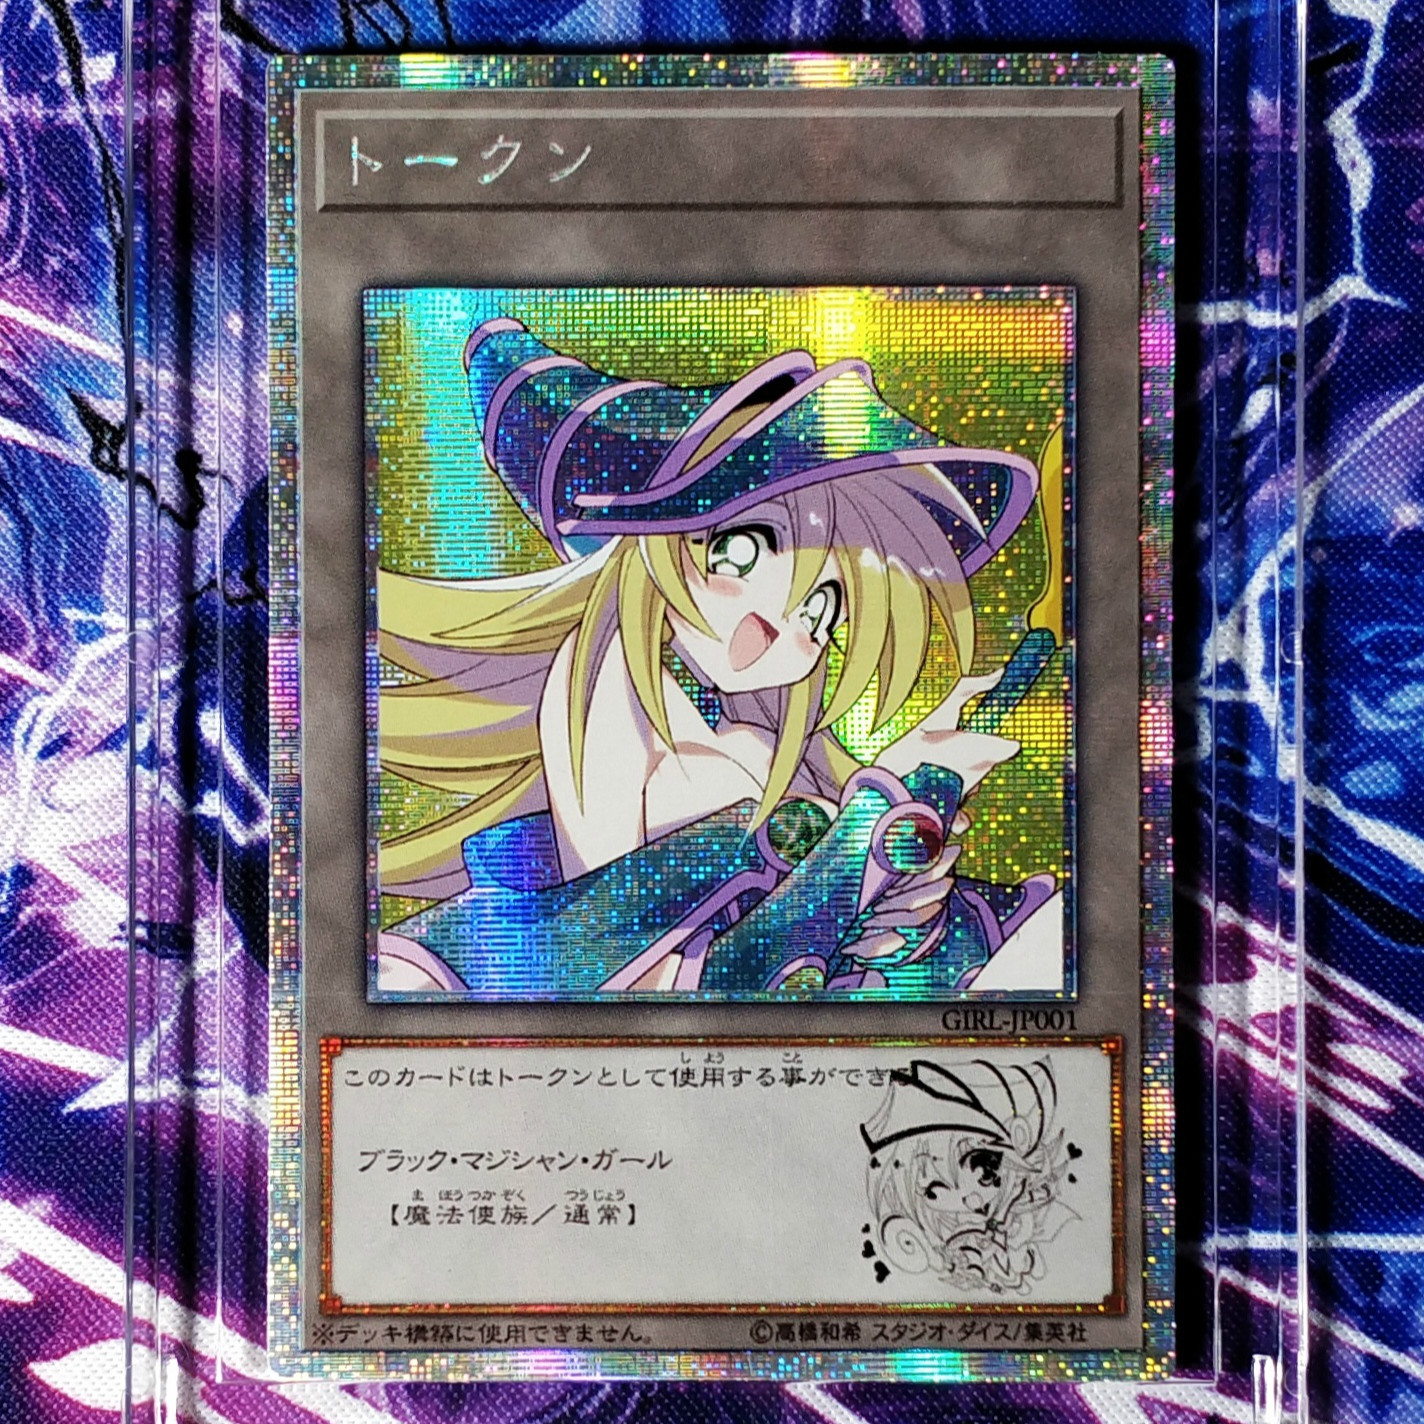 Yu Gi Oh Japanese Dark Magician Girl DIY Colorful Toys Hobbies Hobby Collectibles Game Collection Anime Cards